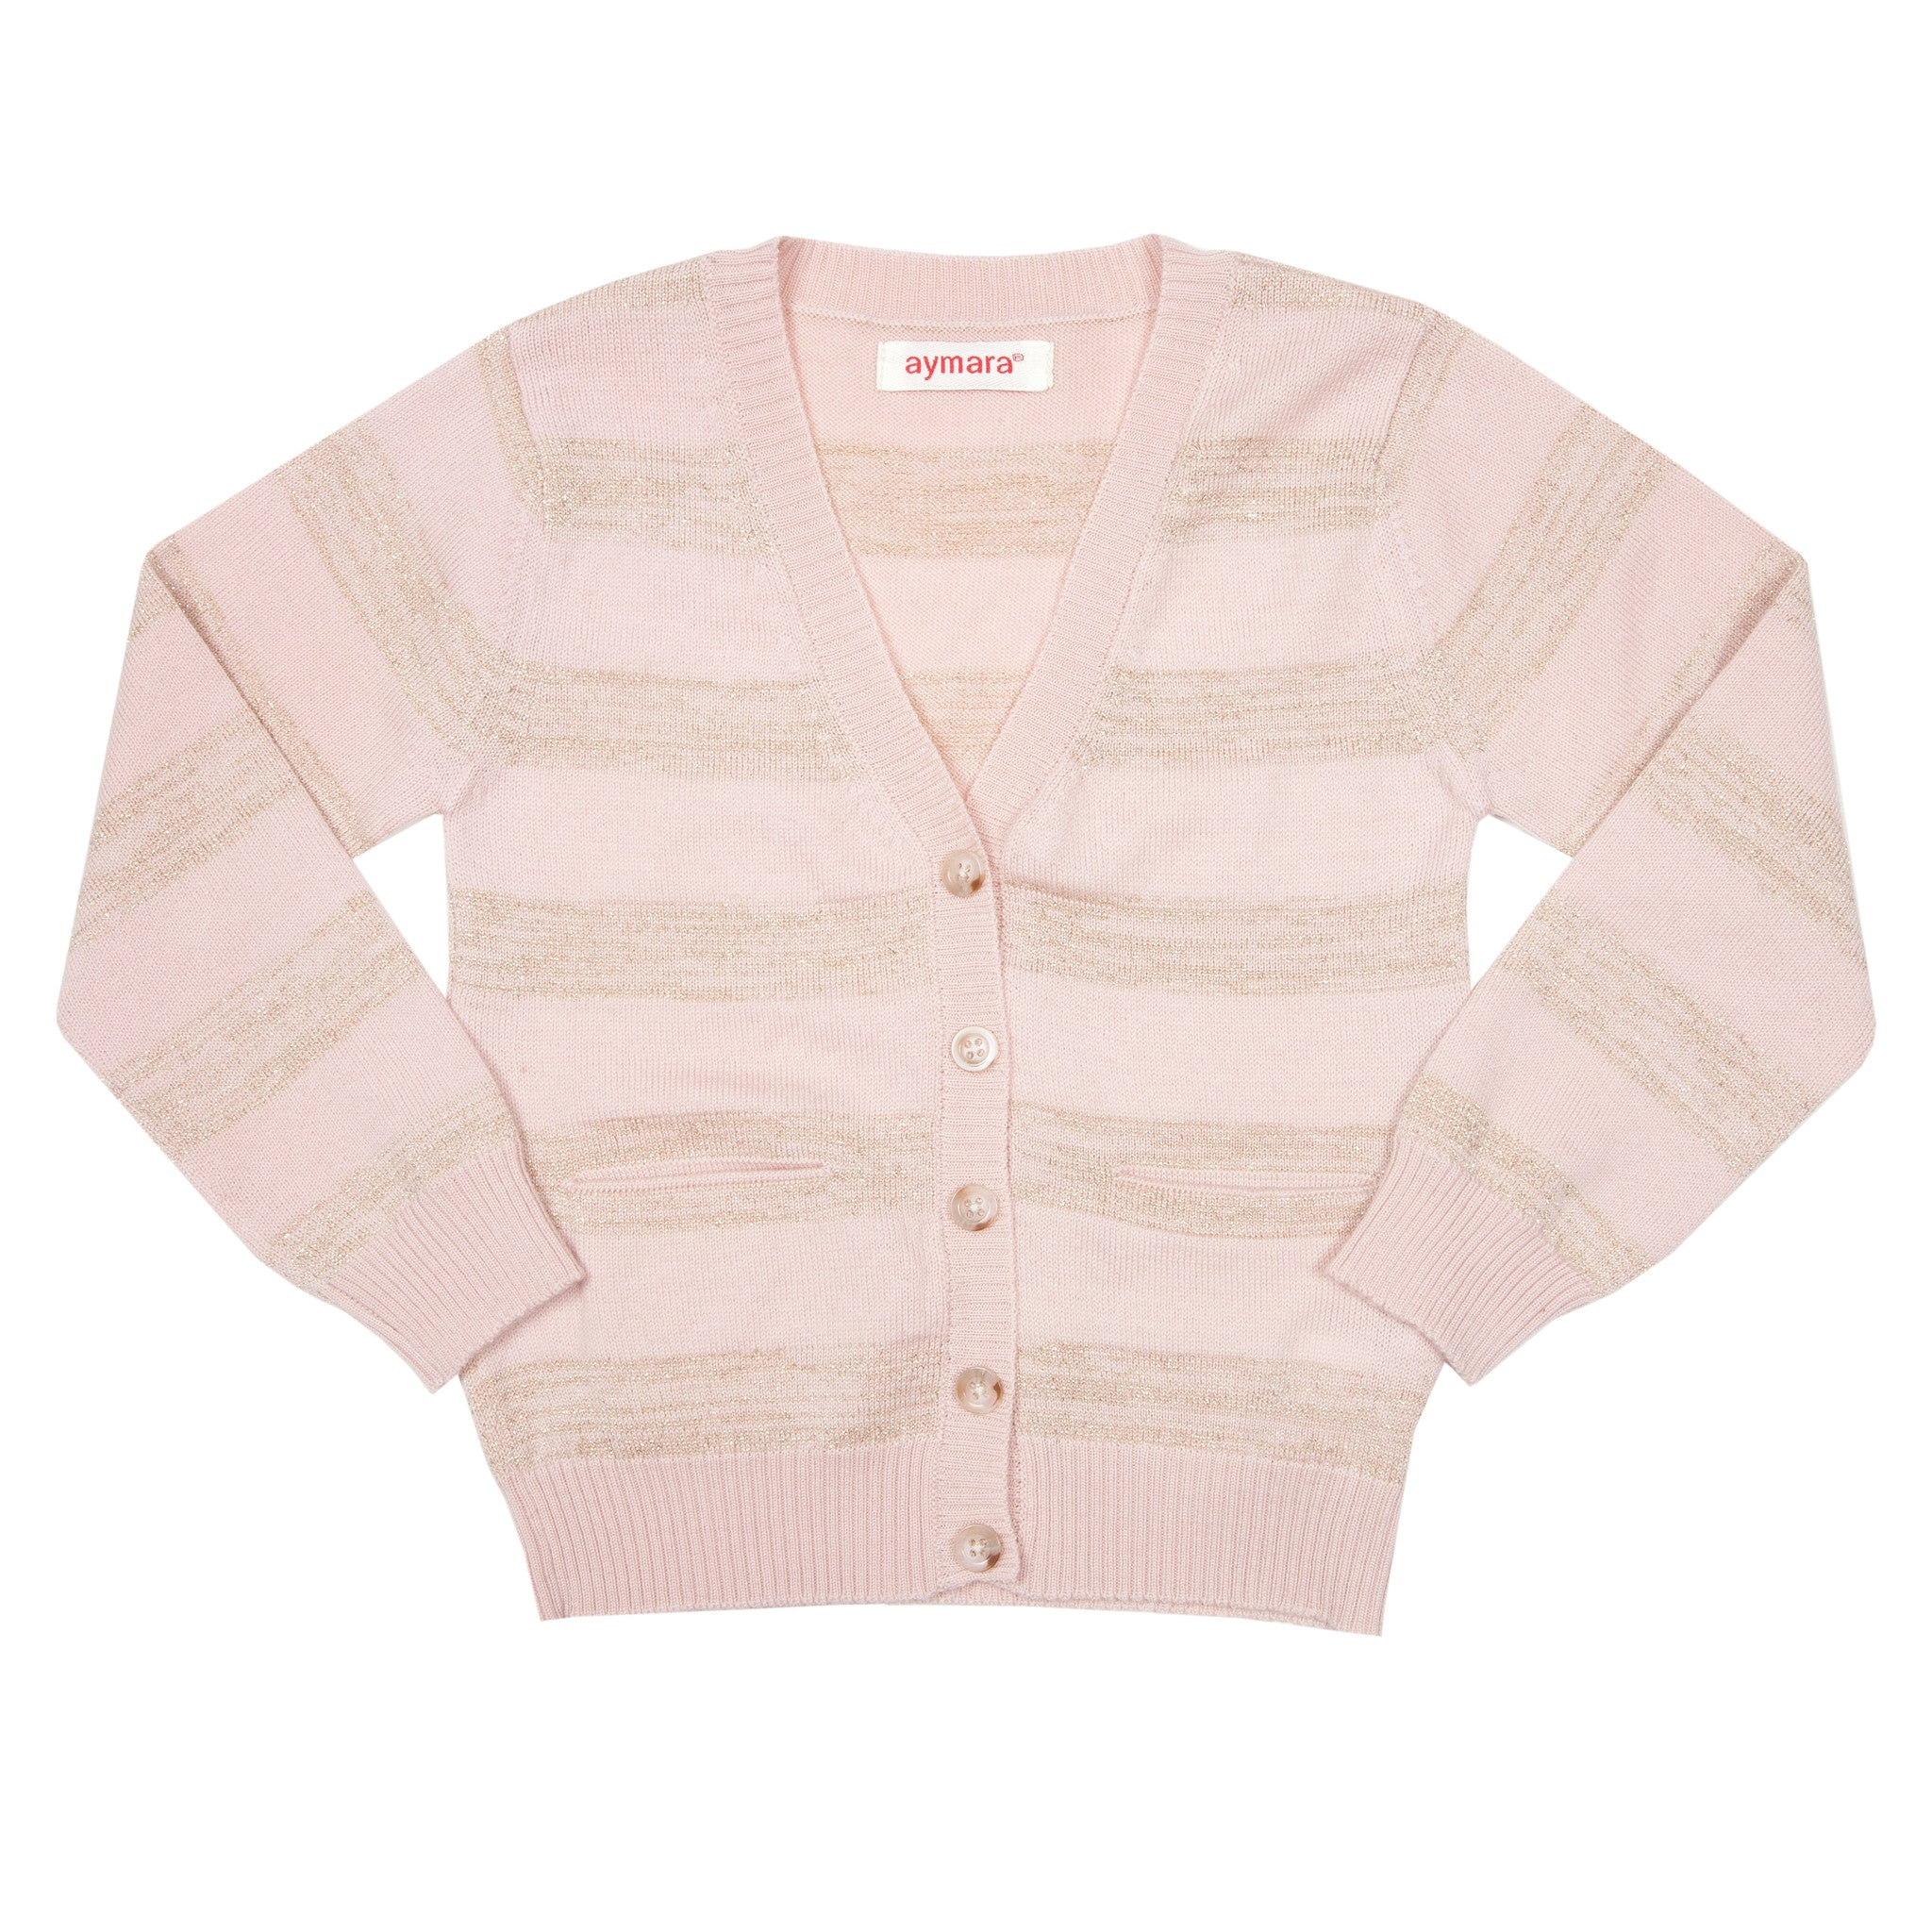 Seraphine Cardigan - Pink & Gold Stripe - Little Citizens Boutique  - 1